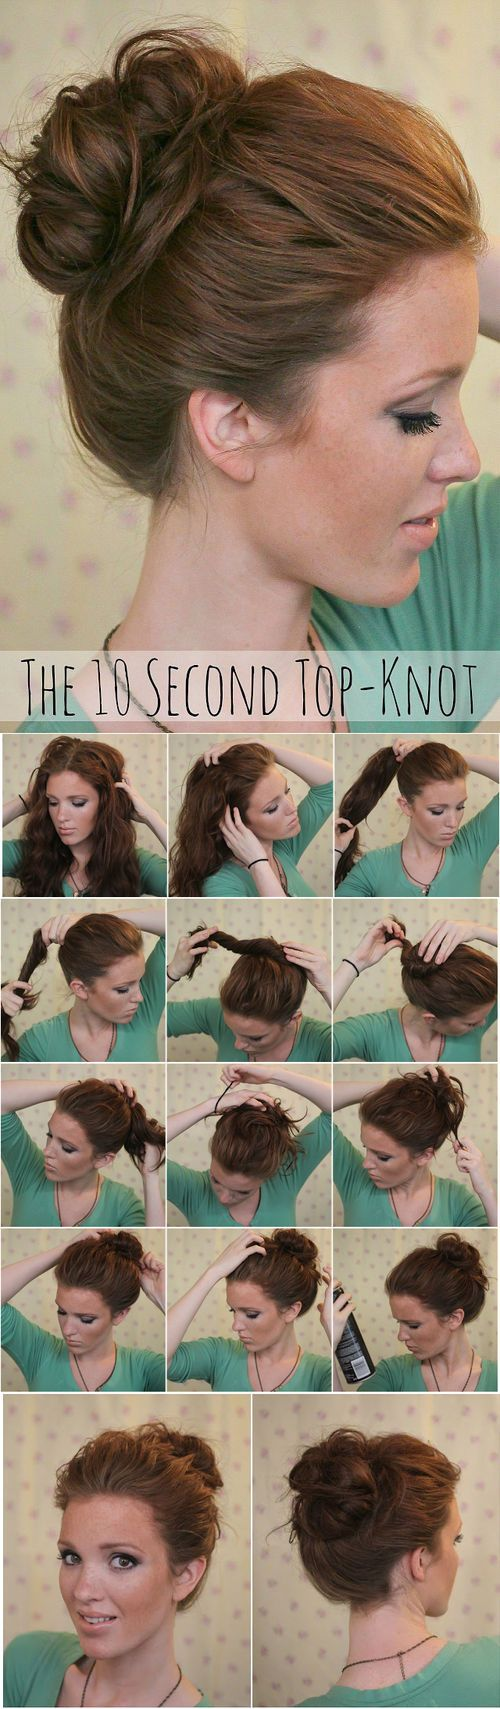 Super Easy Knotted Bun Updo #DIY